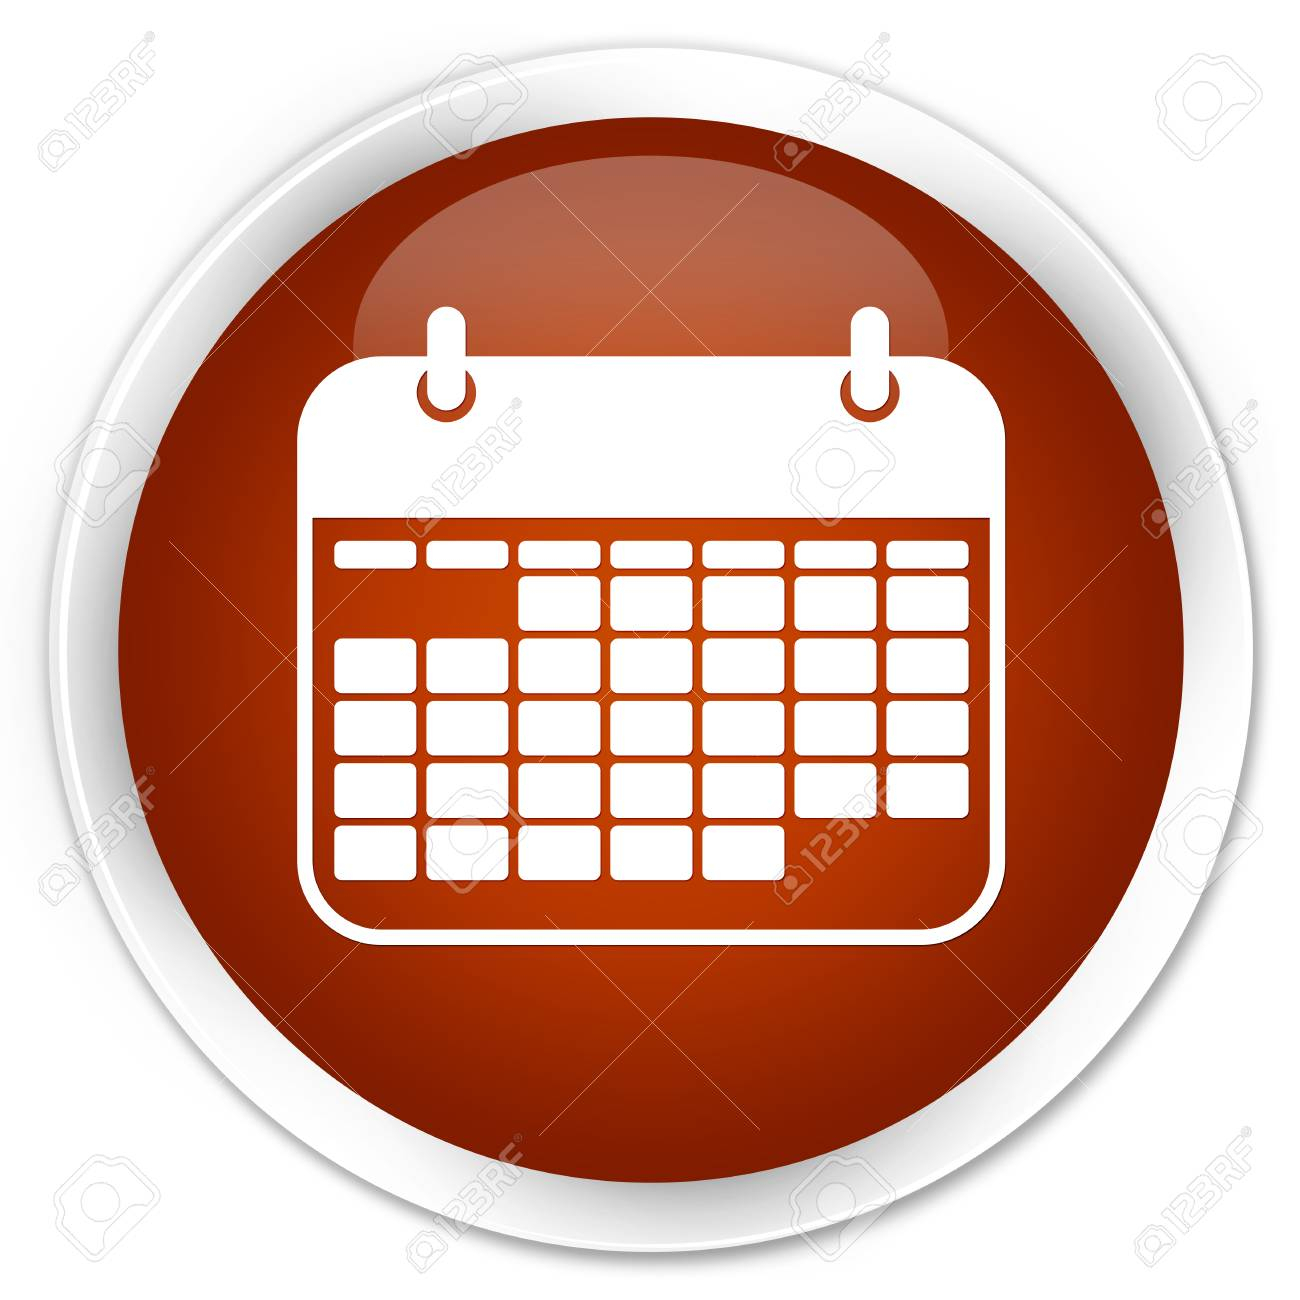 Calendar Icon Brown Glossy Round Button with Round Calendar Icon